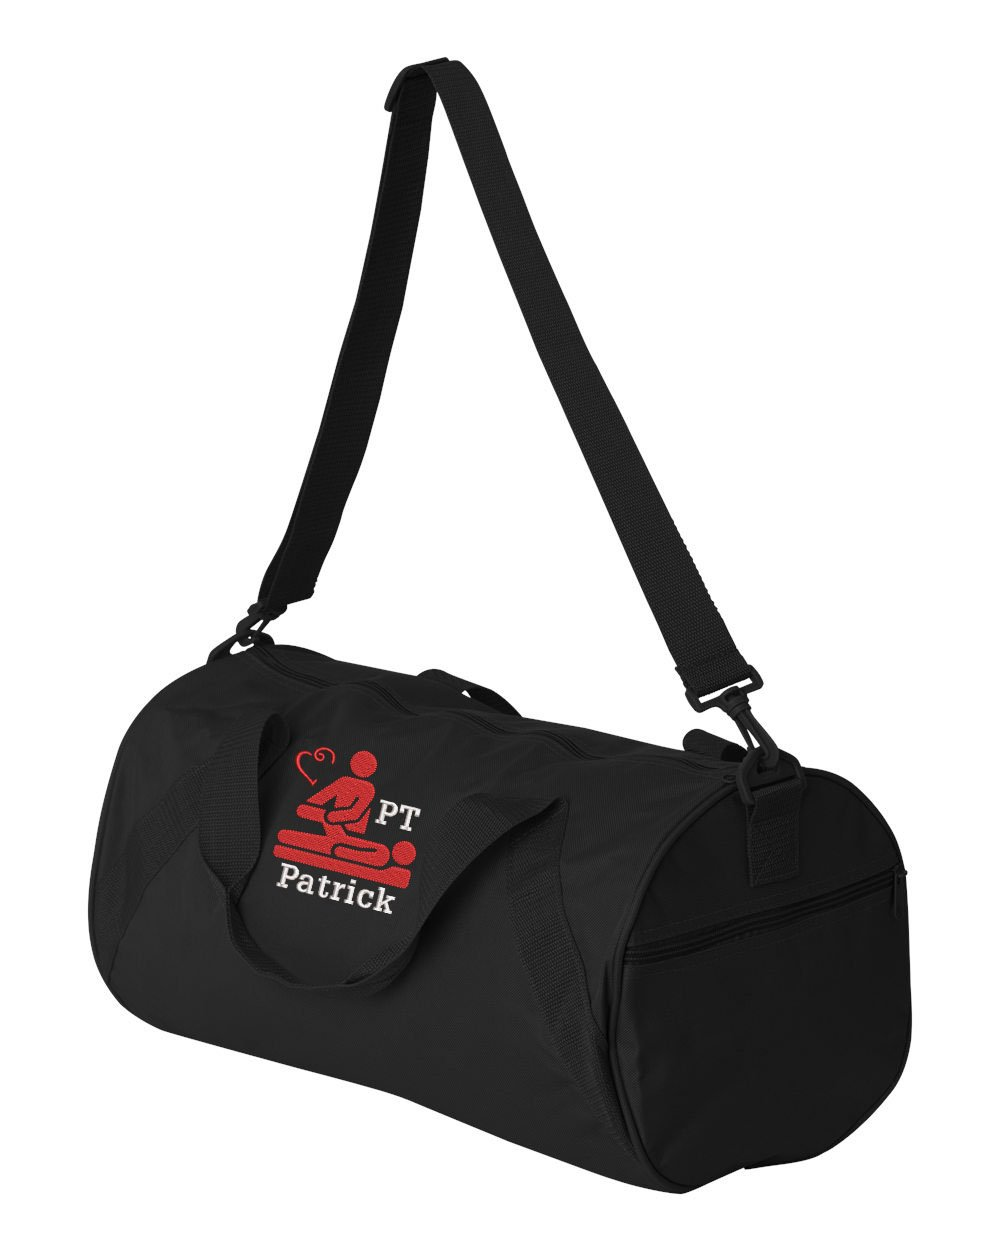 Physical Therapist Personalized Embroidered Duffle Bag